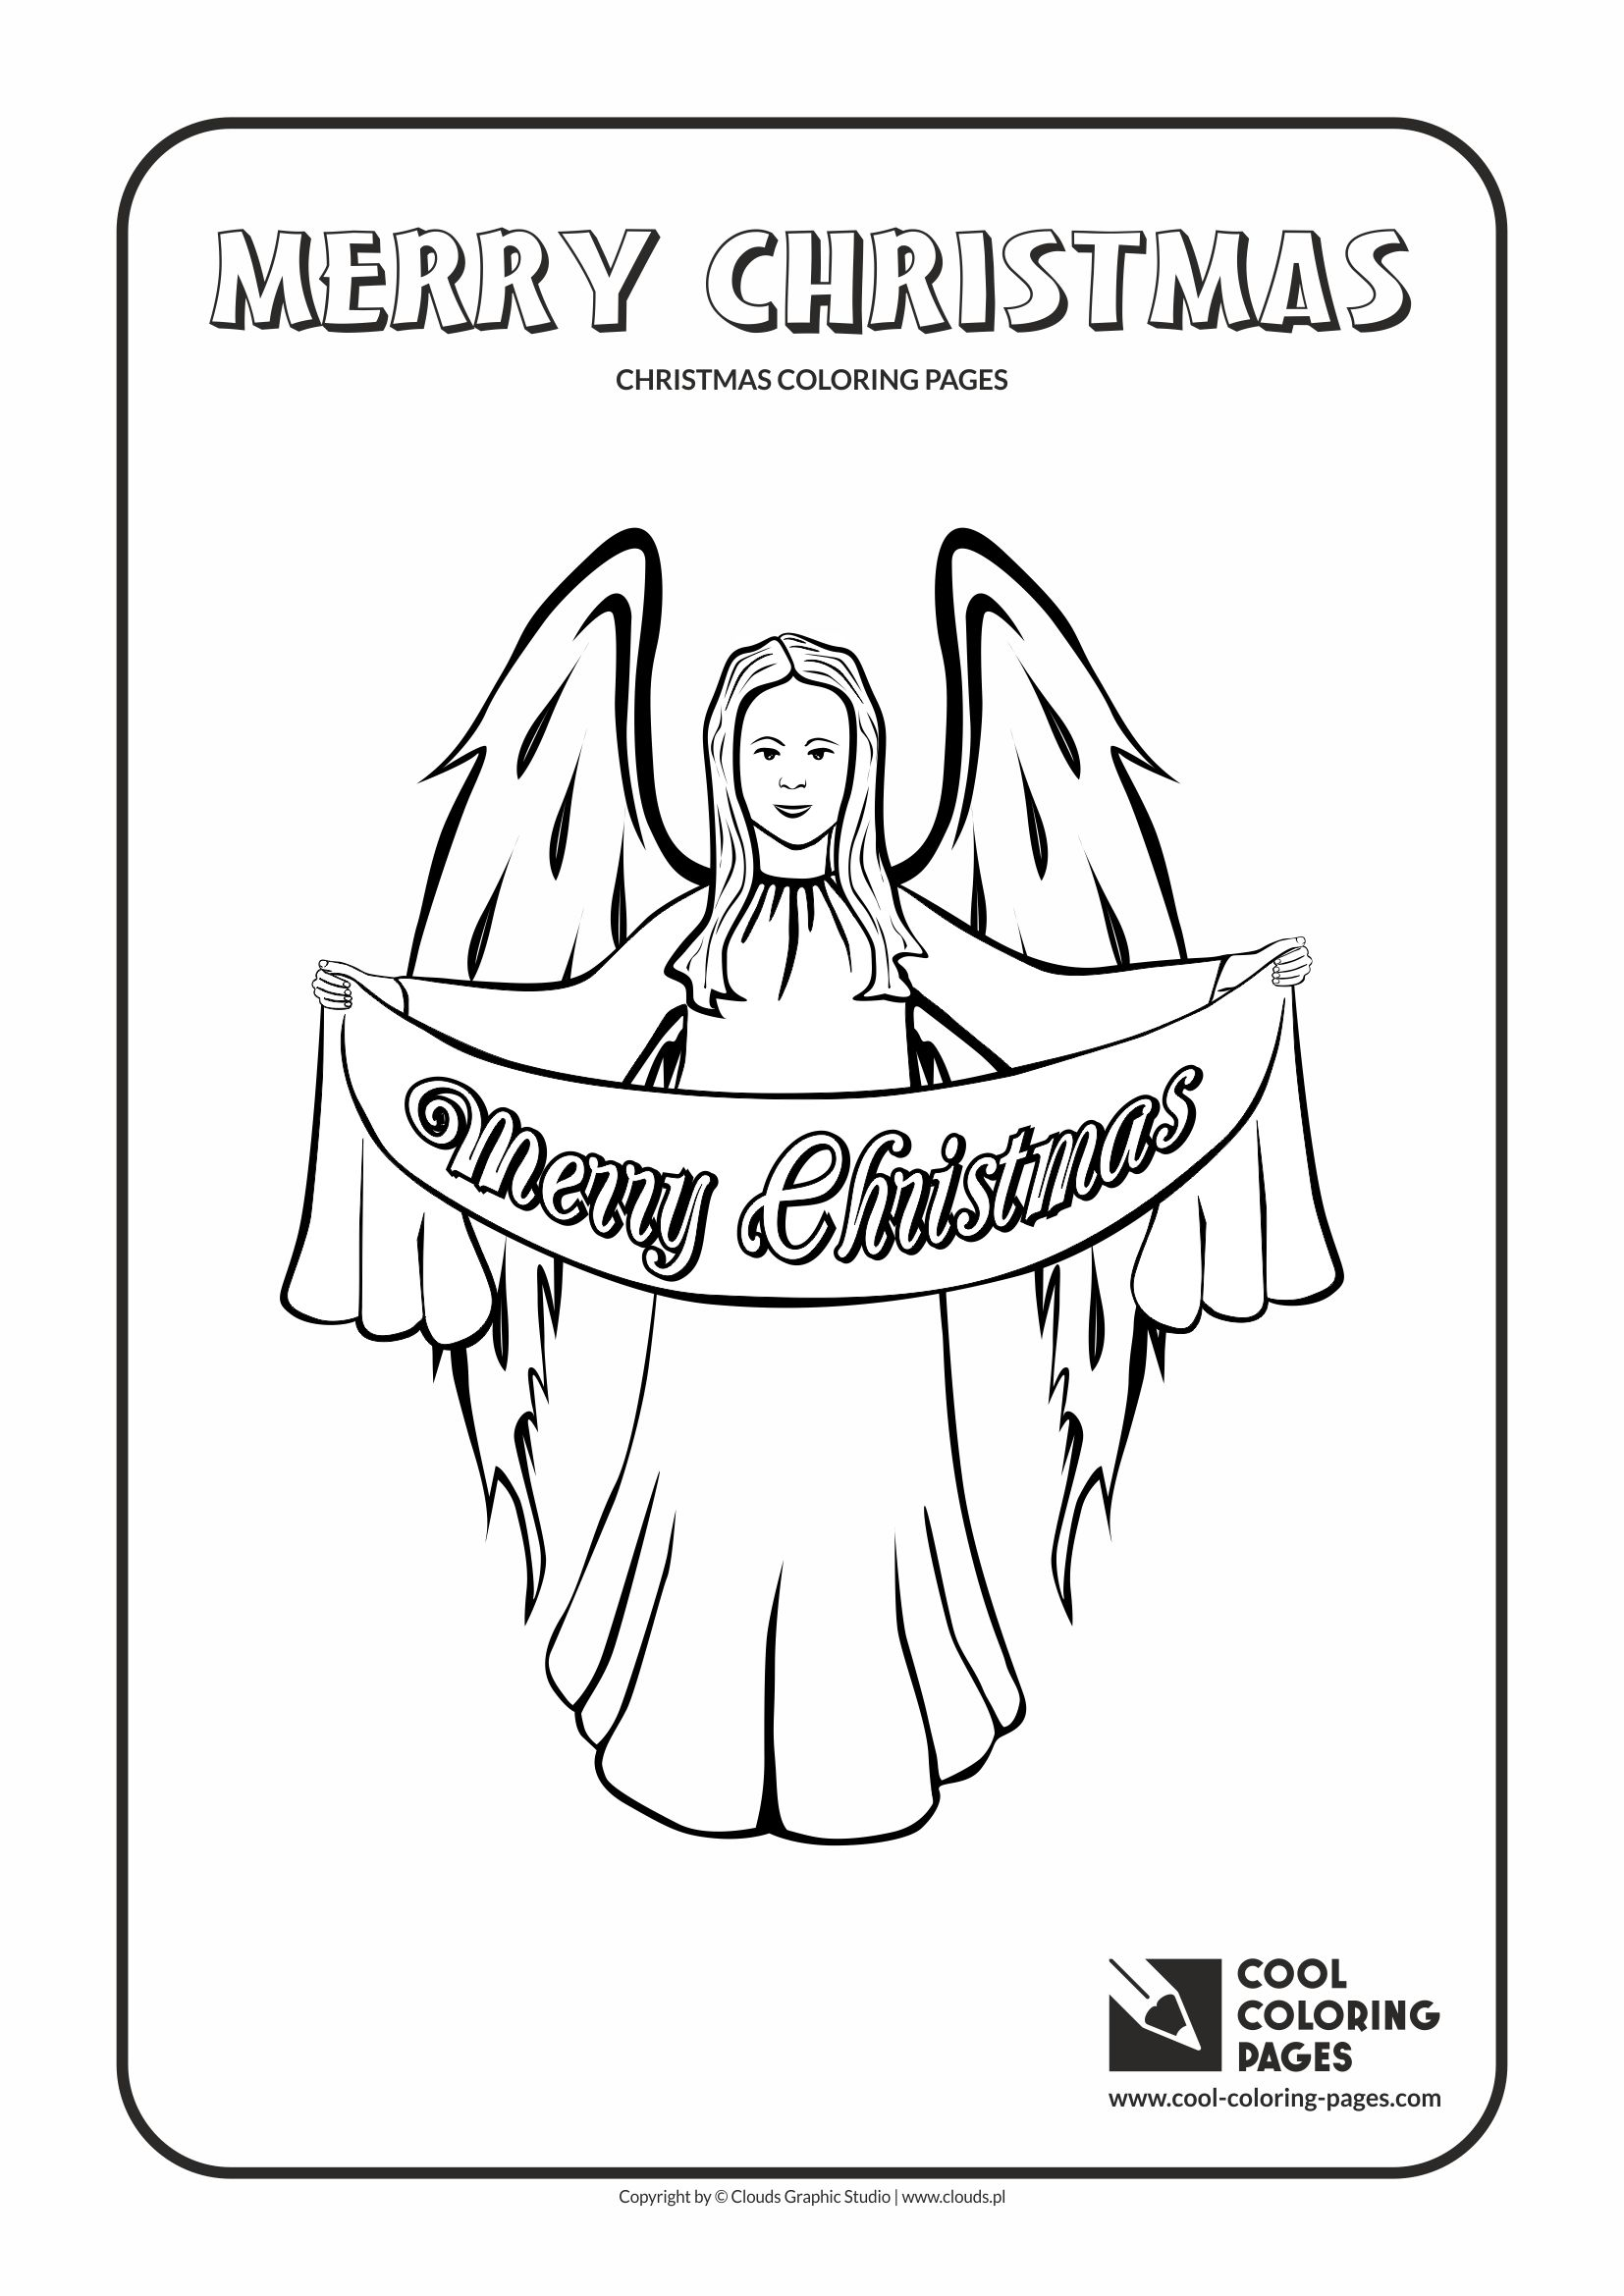 Cool Coloring Pages Christmas Coloring Pages Cool